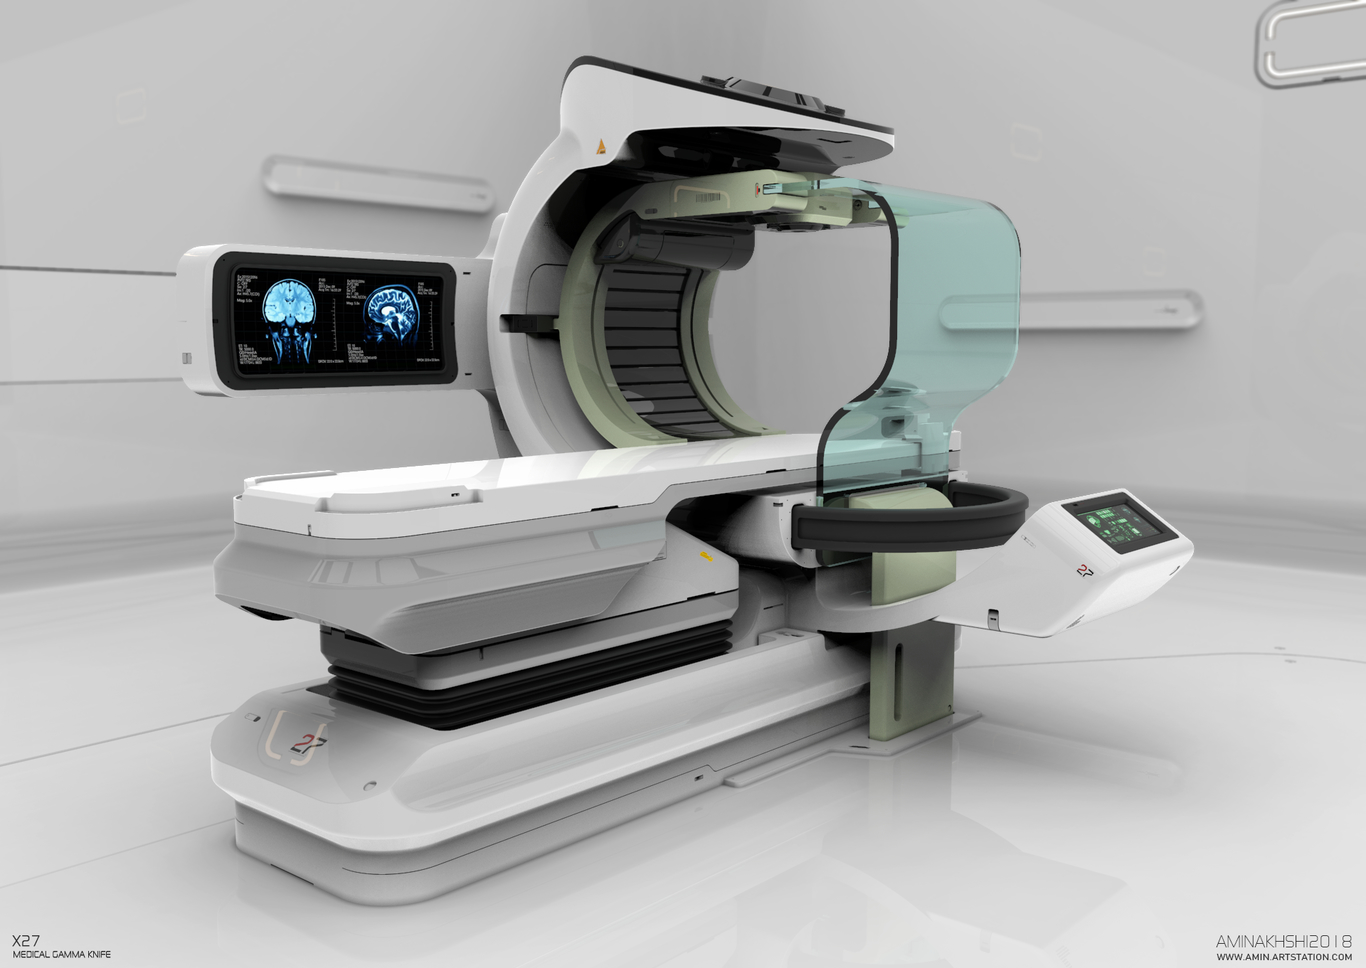 Medical Gamma Knife X27